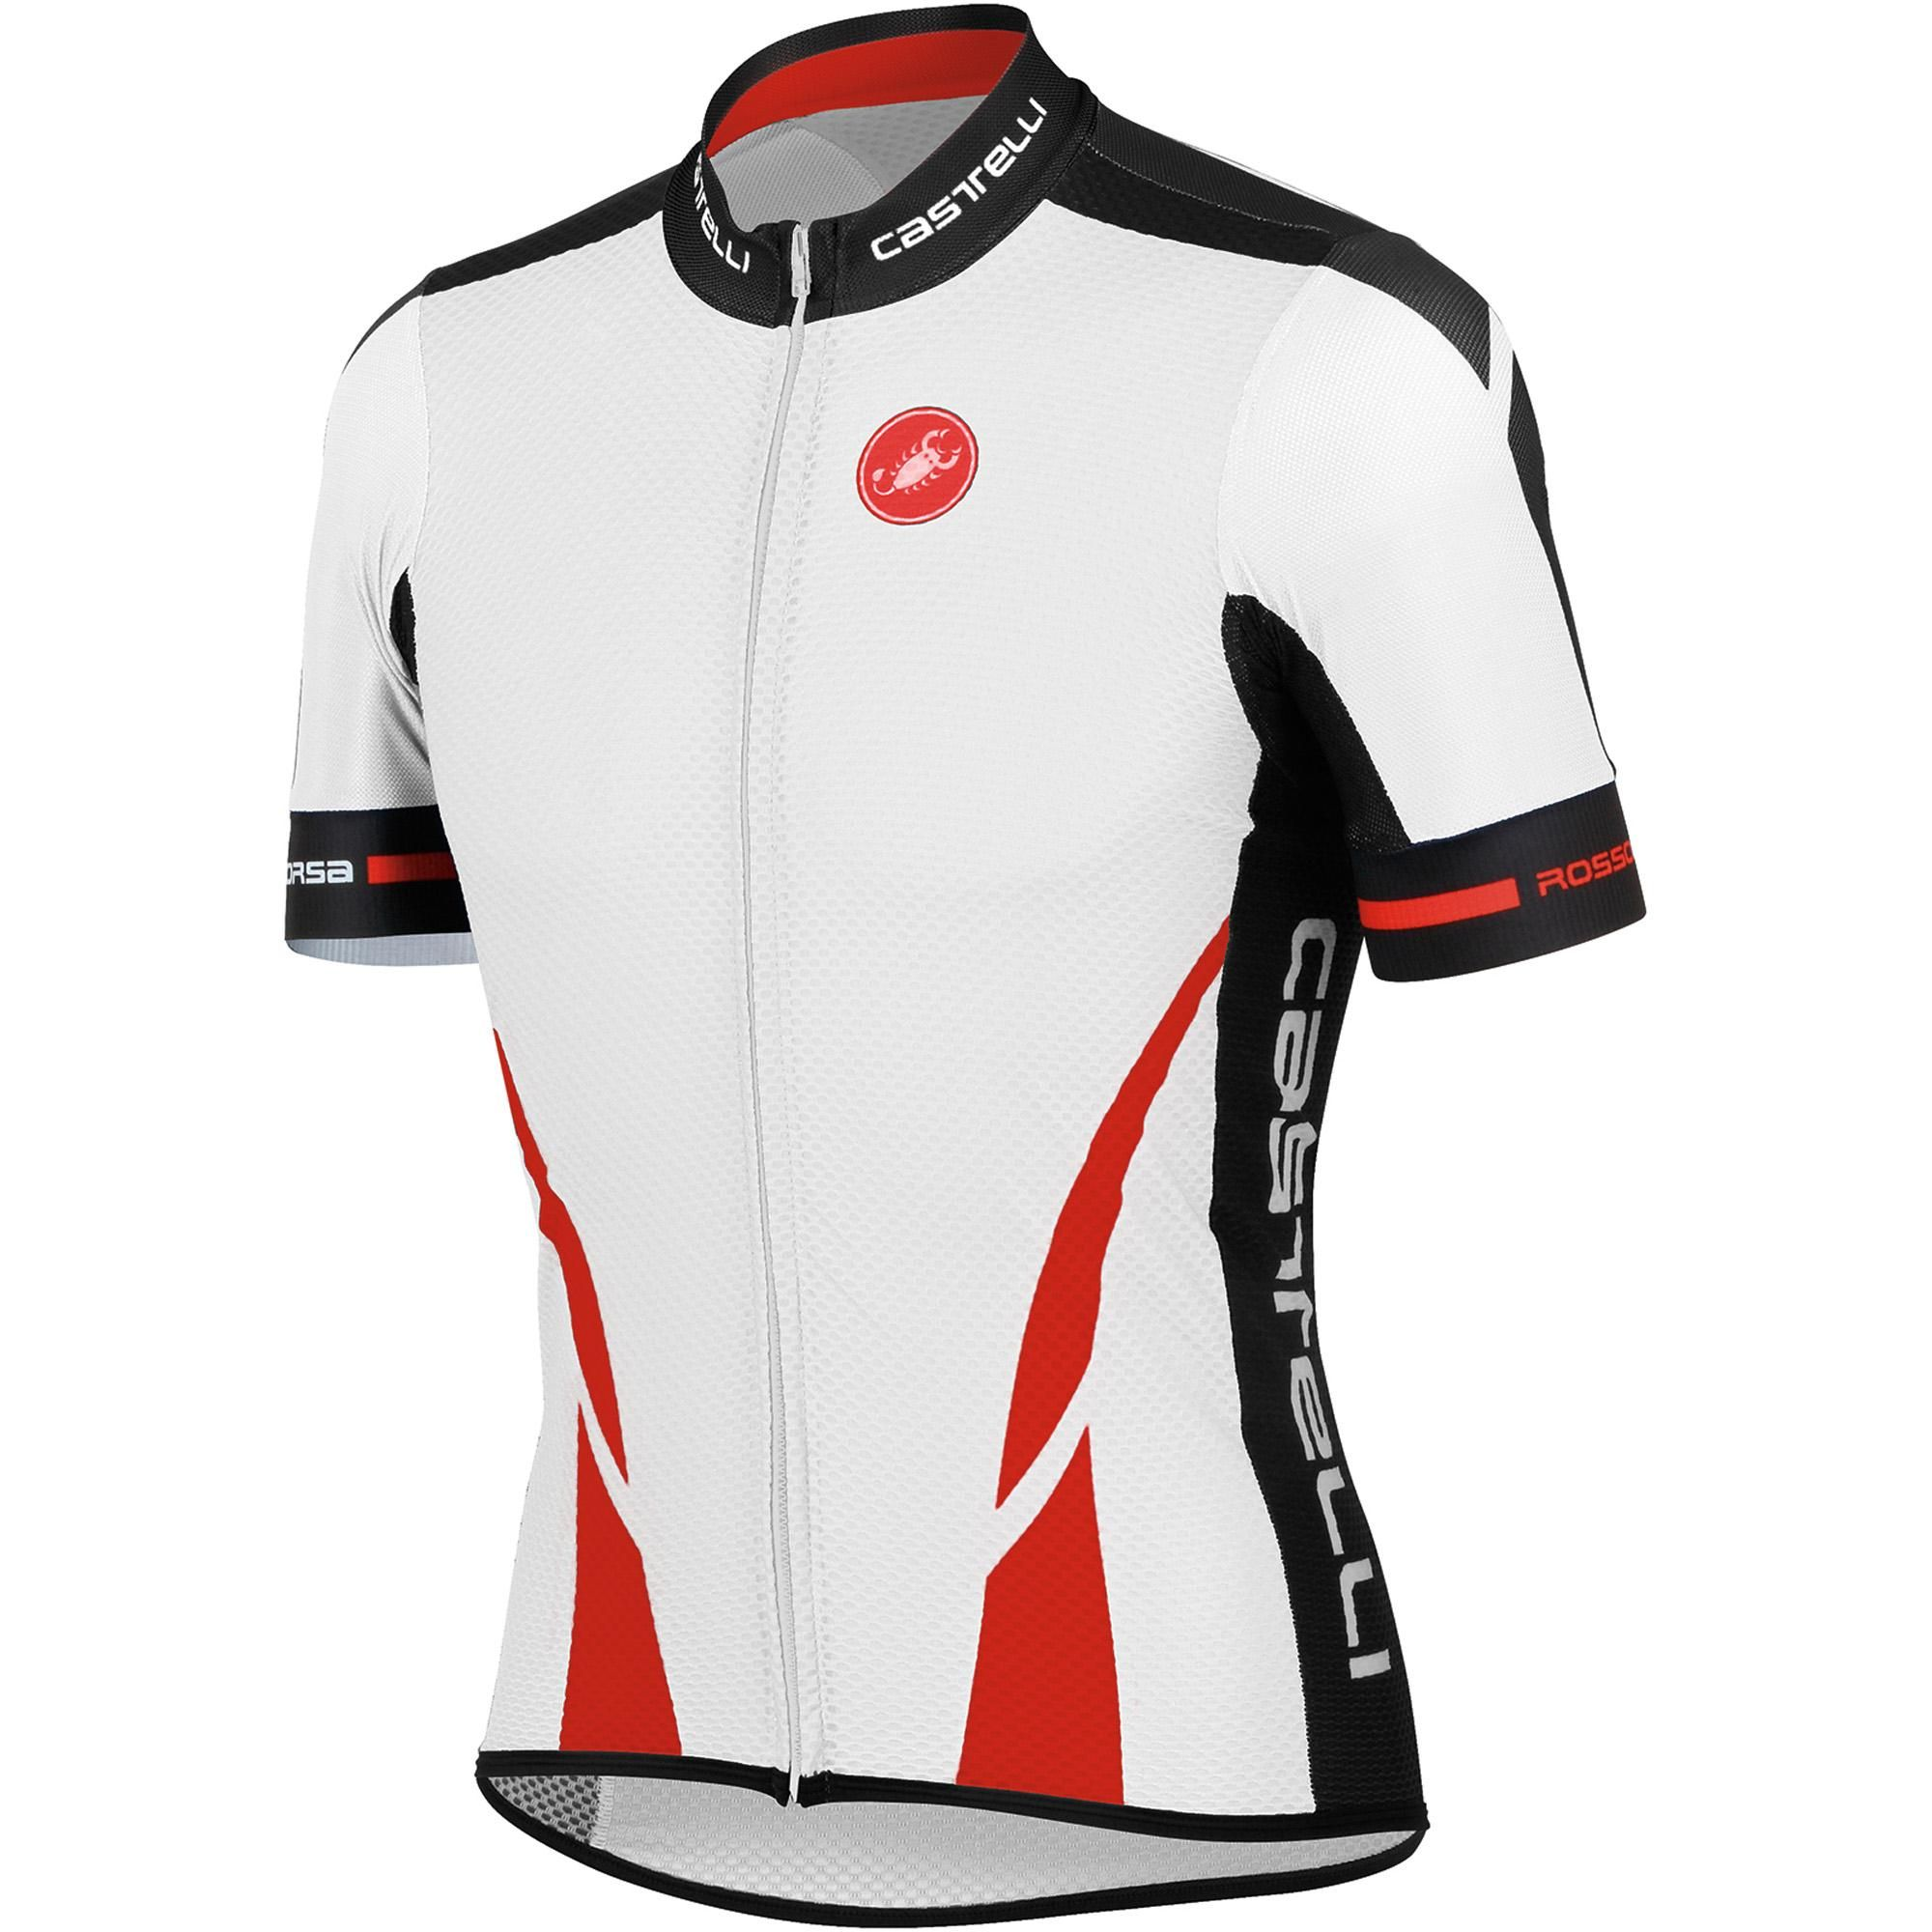 Castelli Climbers Jersey Ultra Light Jersey Cycling Outfit Cycling Jersey Design Clothes